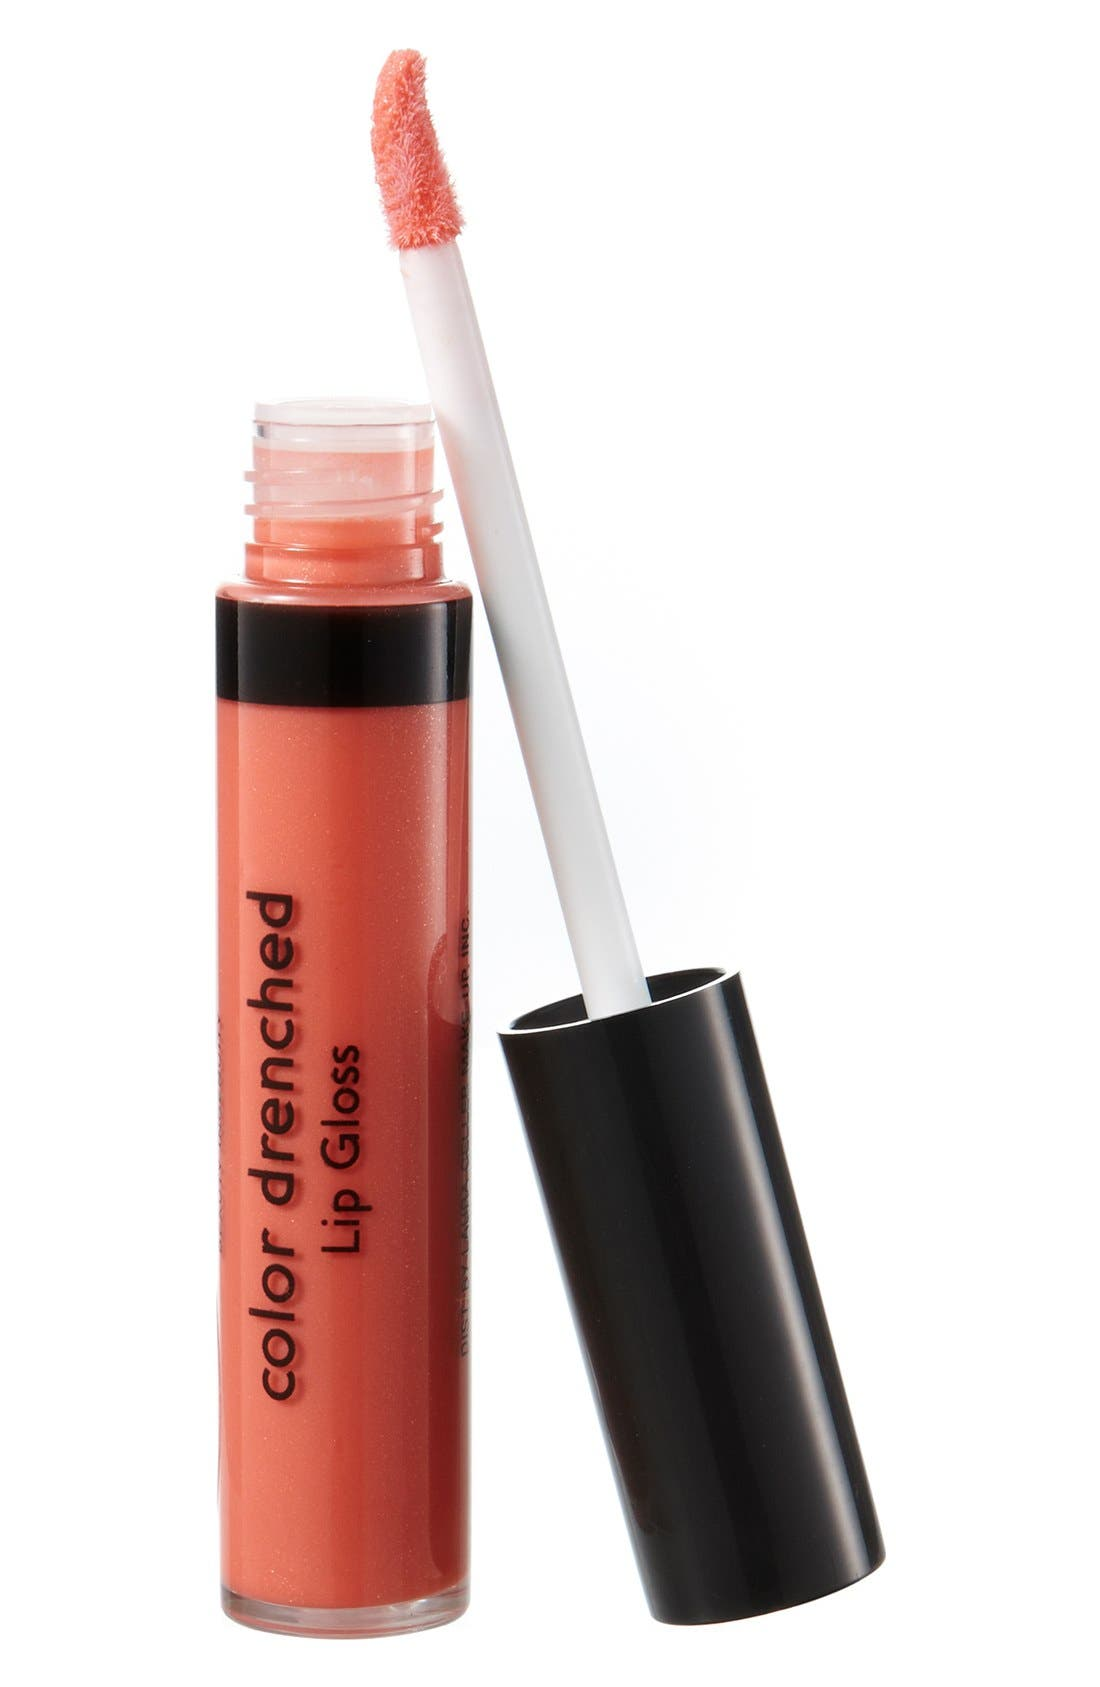 Laura Geller Beauty 'Color Drenched' Lip Gloss